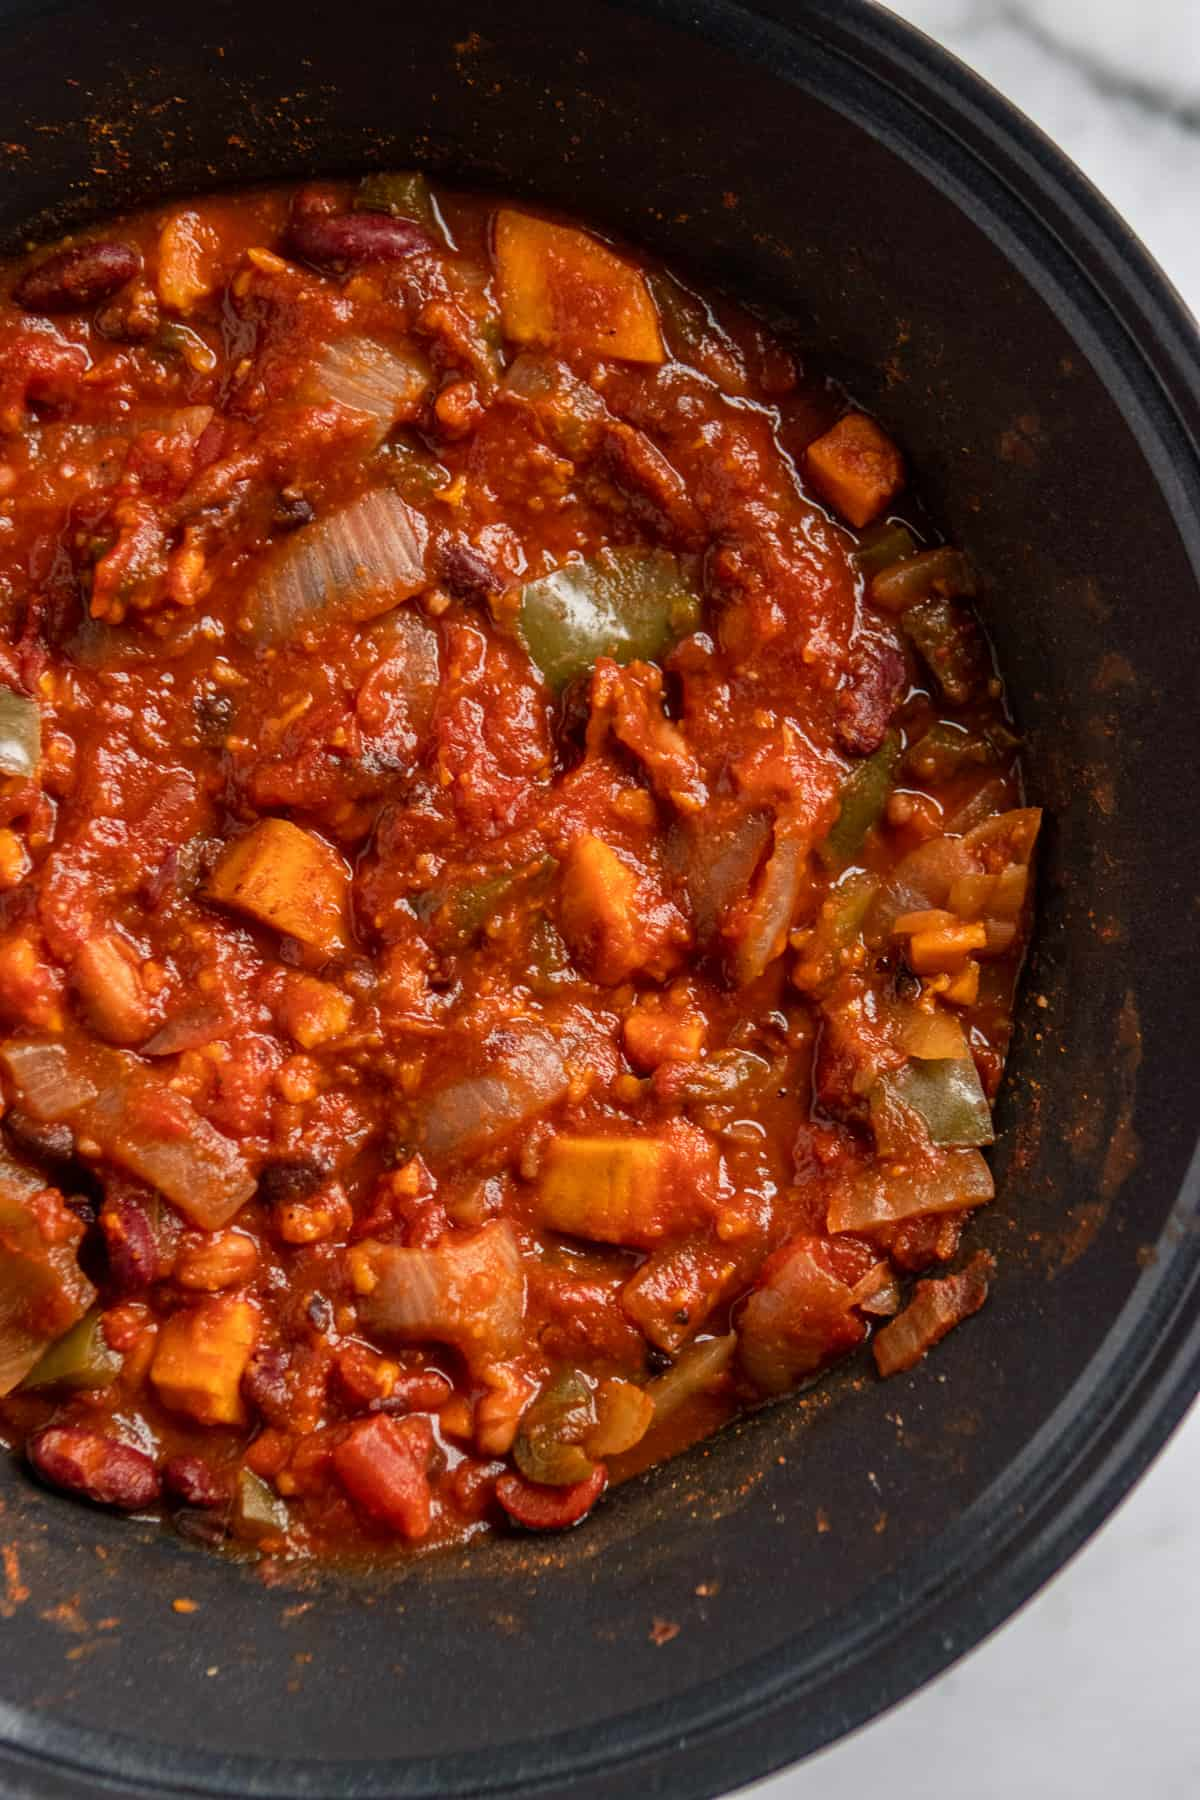 Cooked sweet potato chili in crock pot.